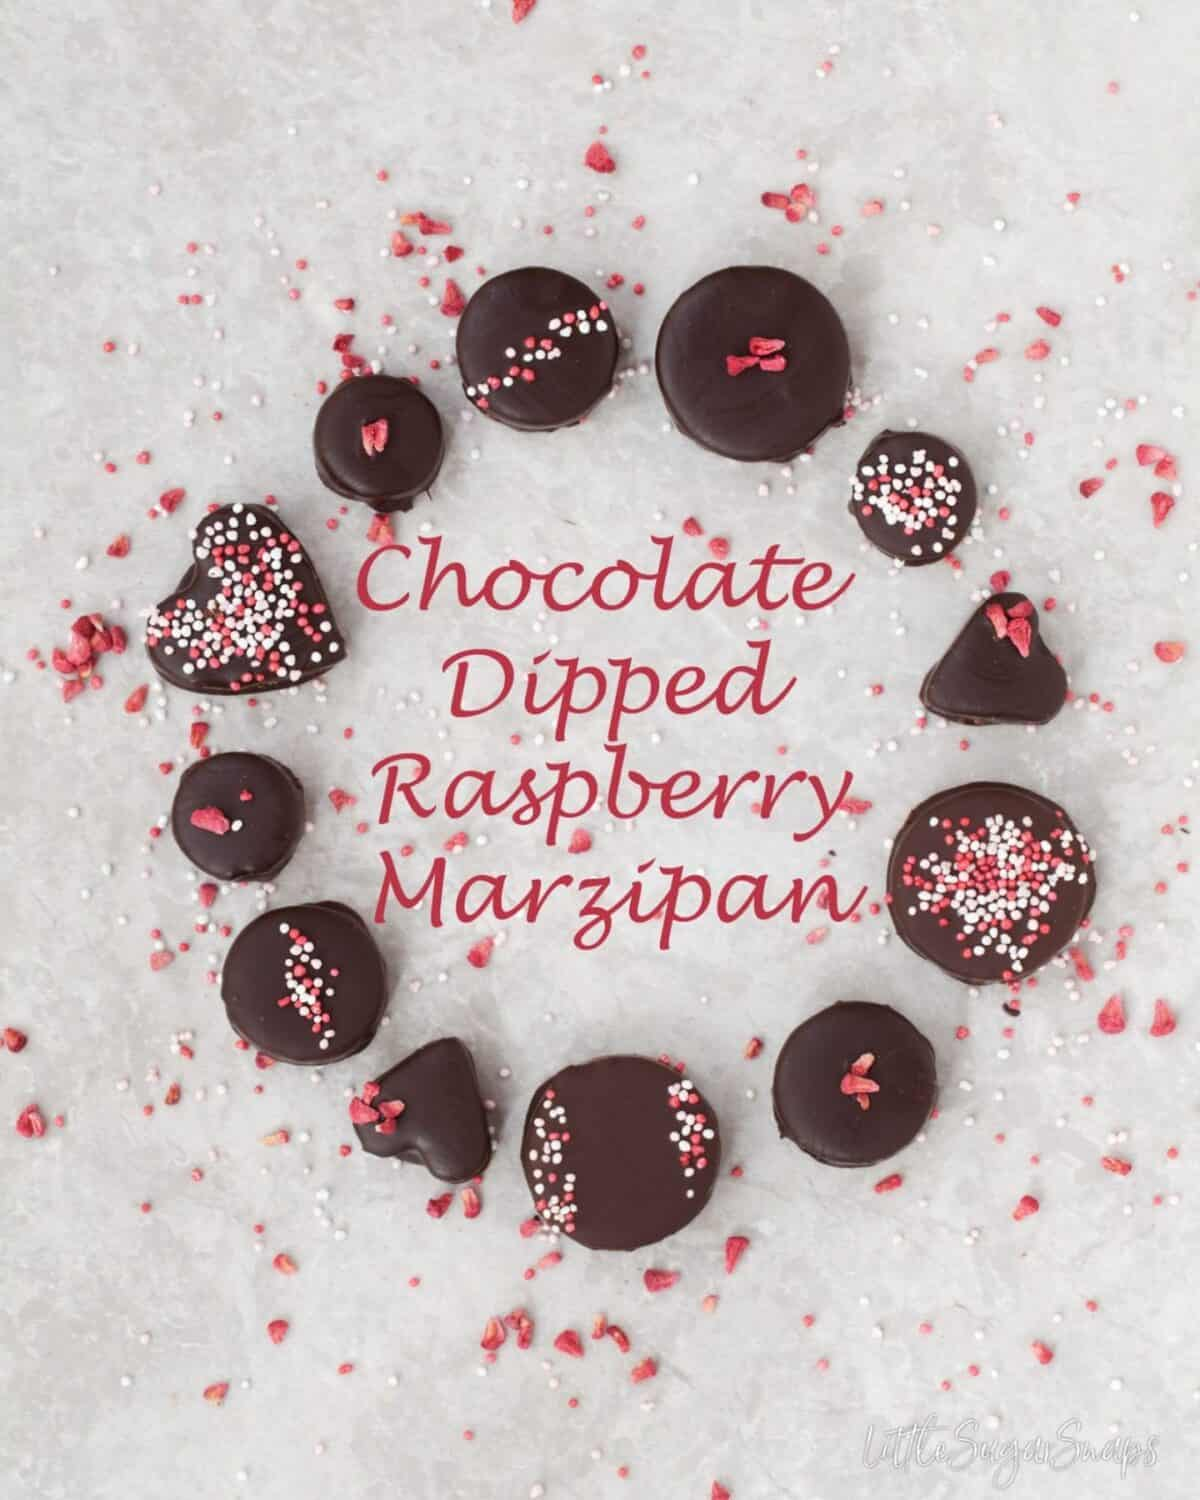 Raspberry Marzipan #marzipan #chocolates